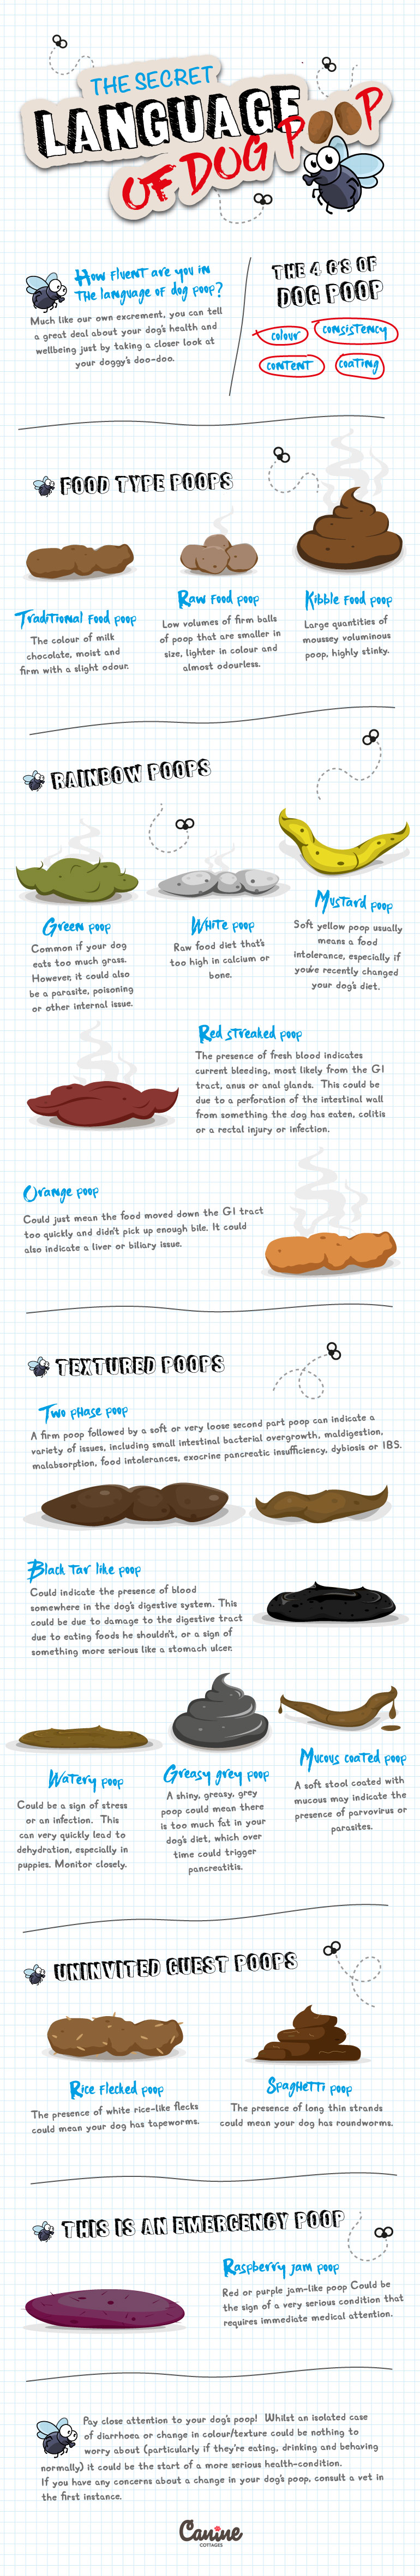 Infographic on the health of your dog's poop